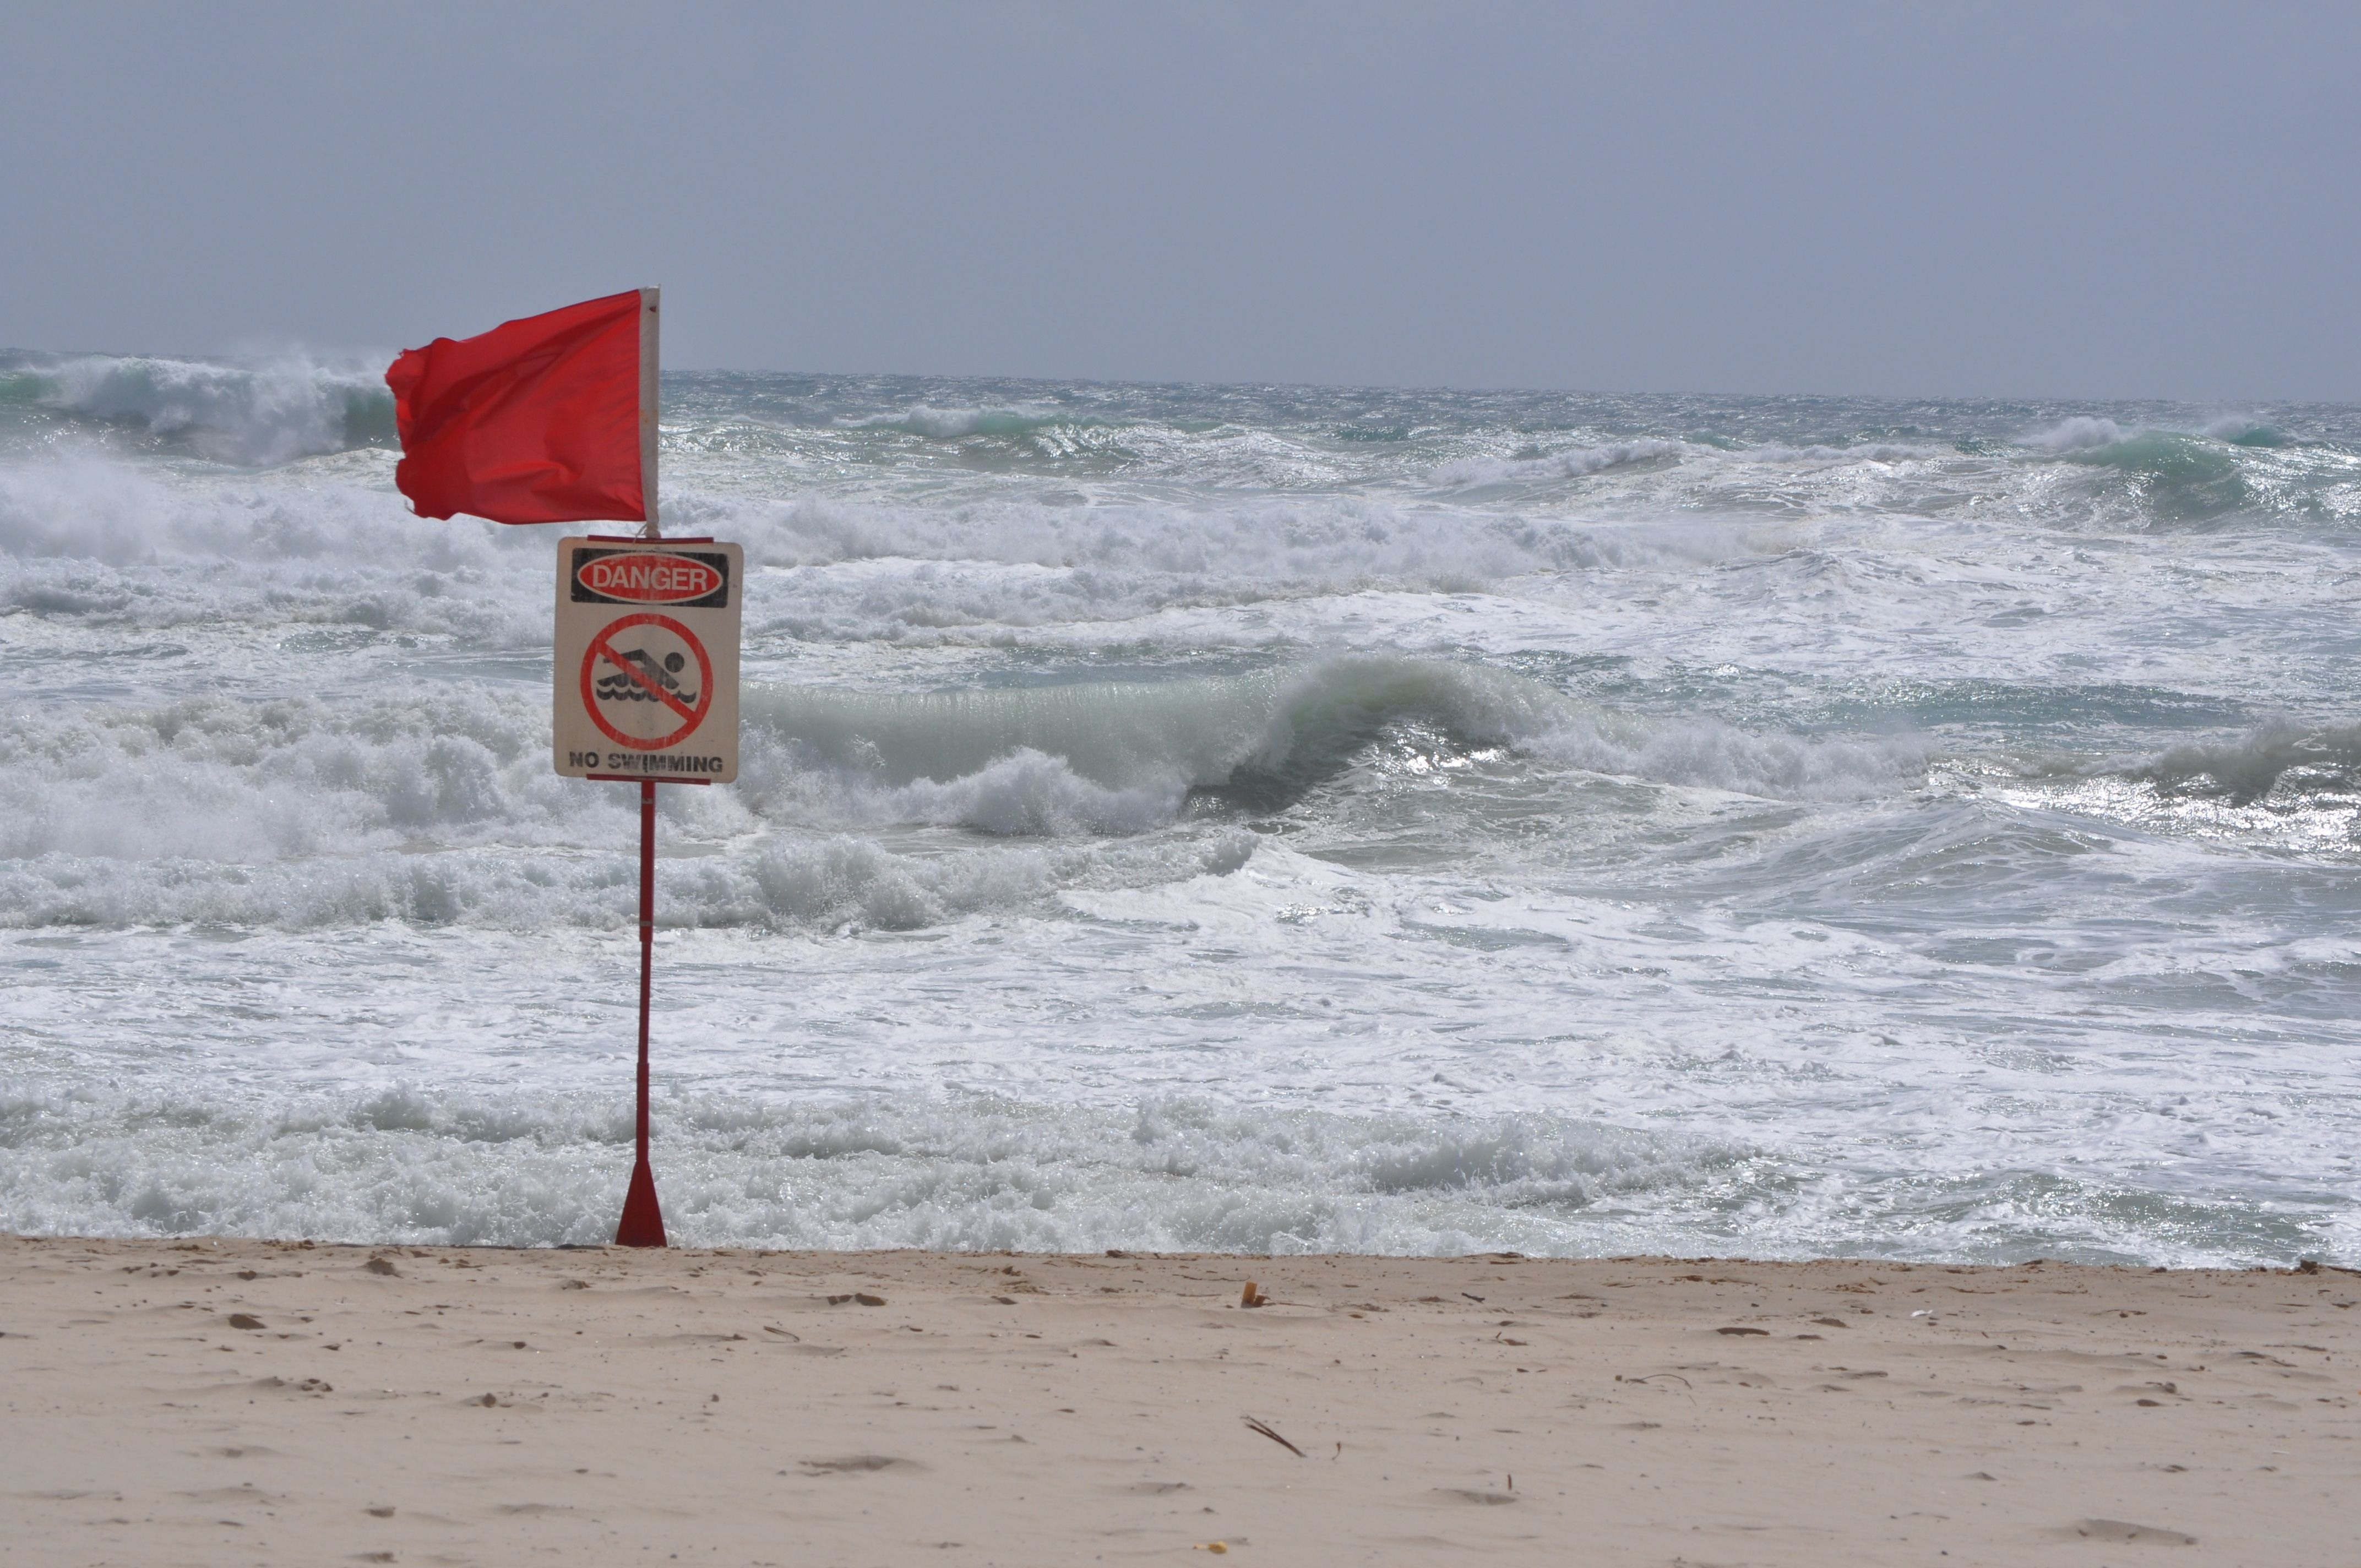 Around Australia The Gold Coast And Surroundings 2009 2015 Red Flag Beach Closed Photo Herman Odijk A Dutch Au In 2020 Beach Close Australian Photographers Photo